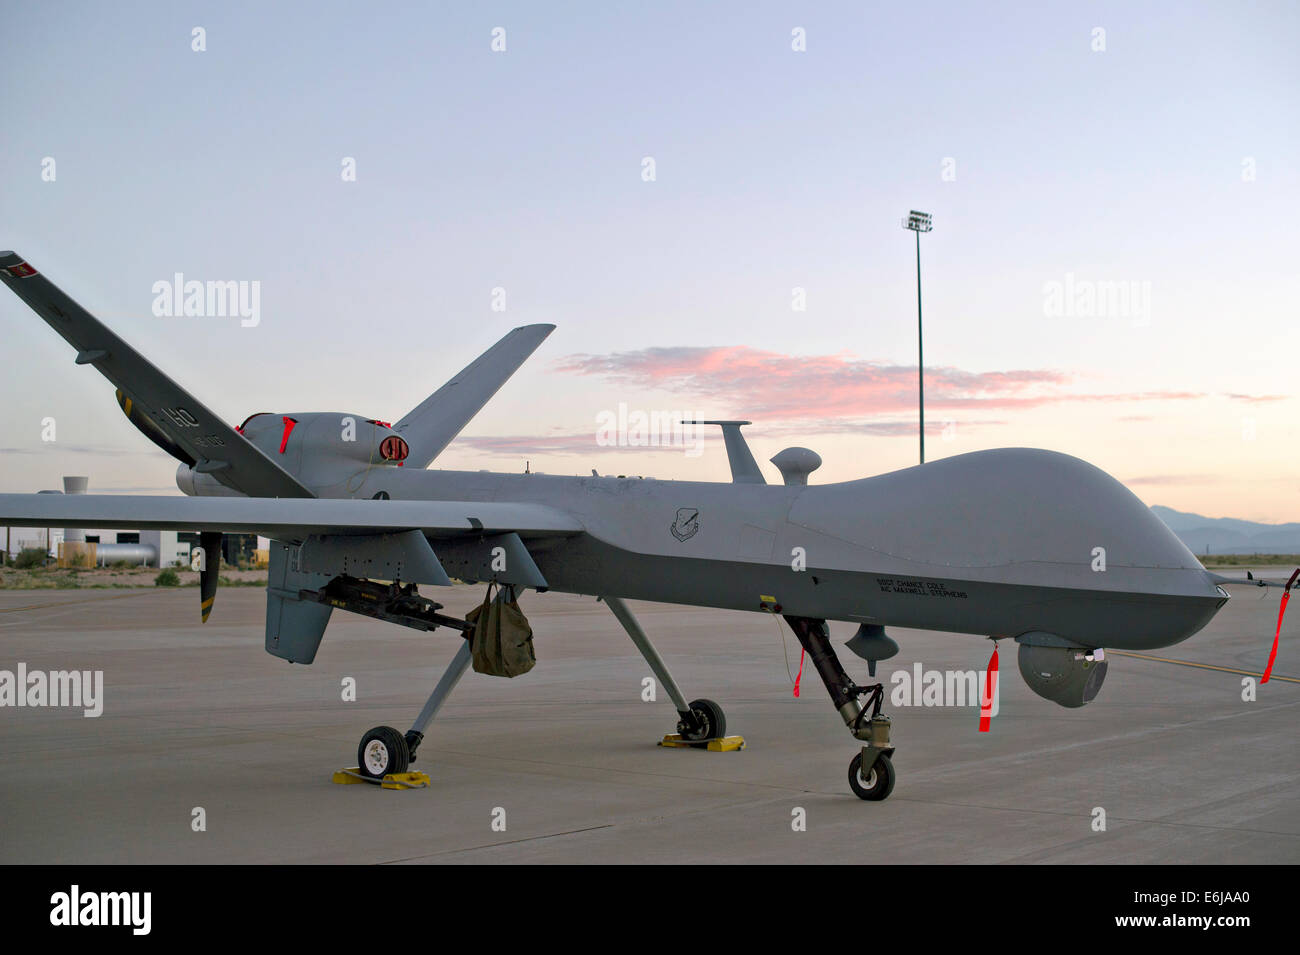 An MQ-9 Reaper parked on the flight line of Holloman Air Force Base August 19, 2014 in Alamogordo, New Mexico. - Stock Image